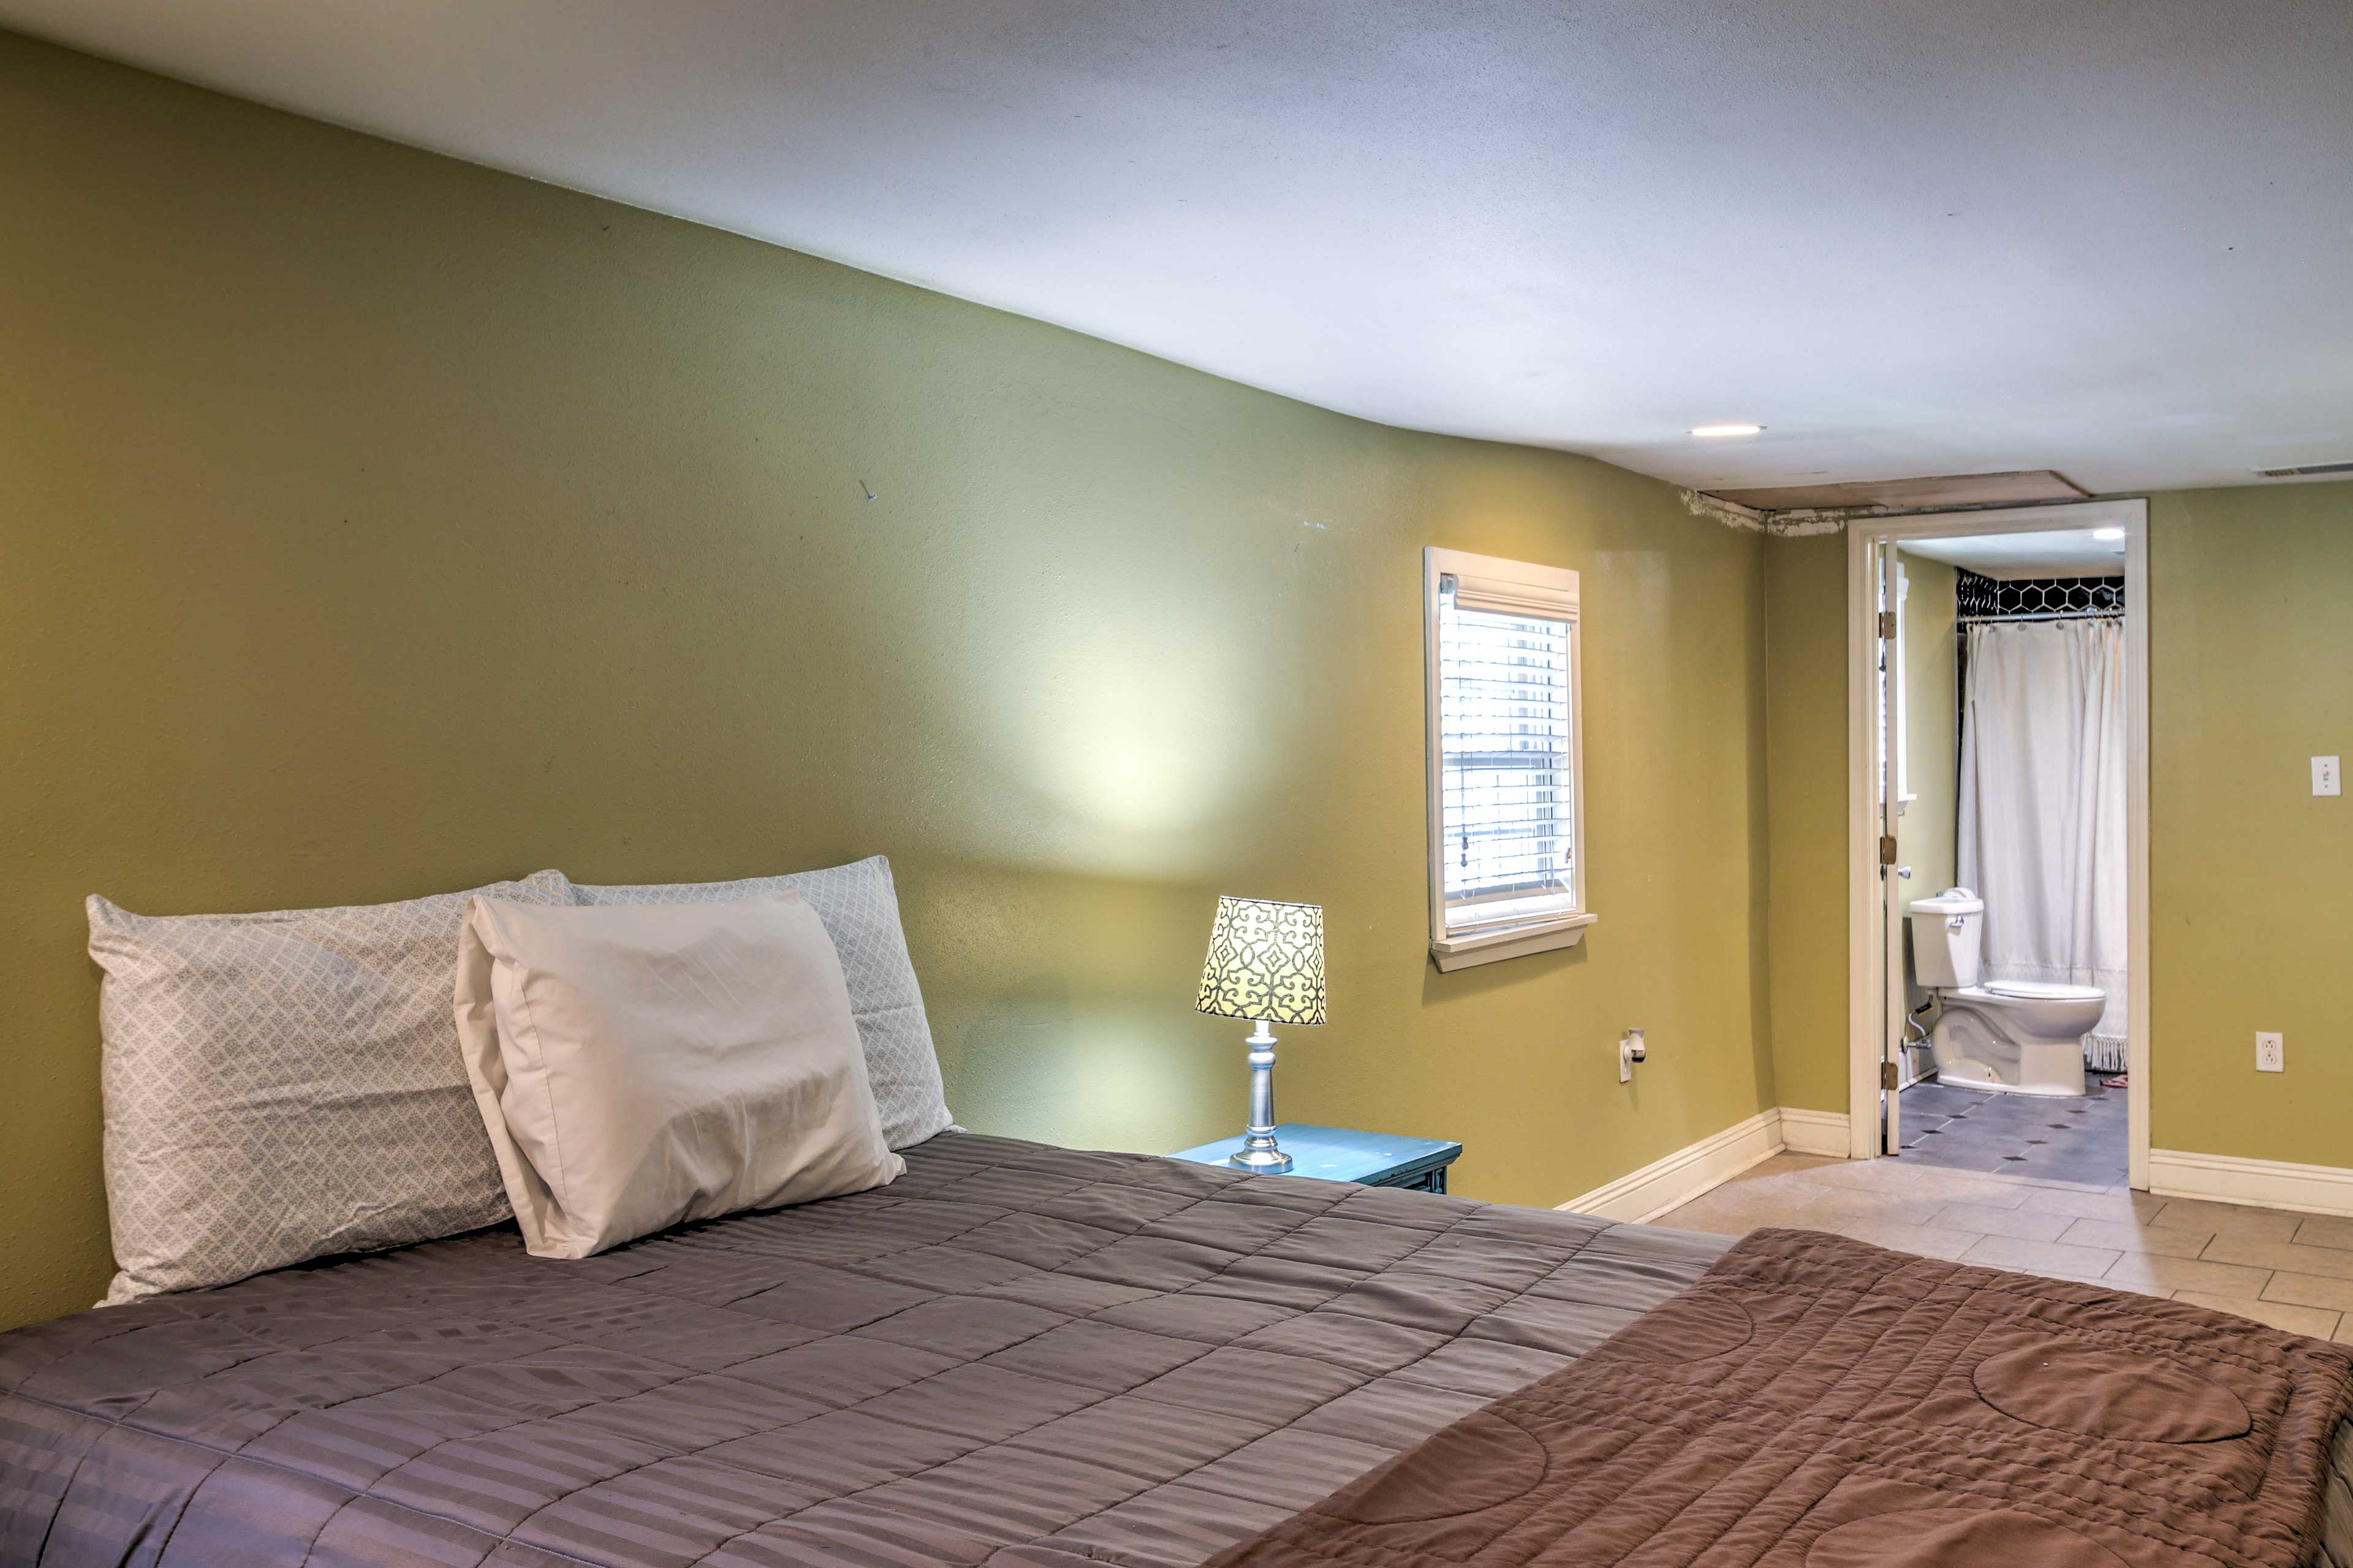 The full bathroom is just steps away, completing your bedroom sanctuary.